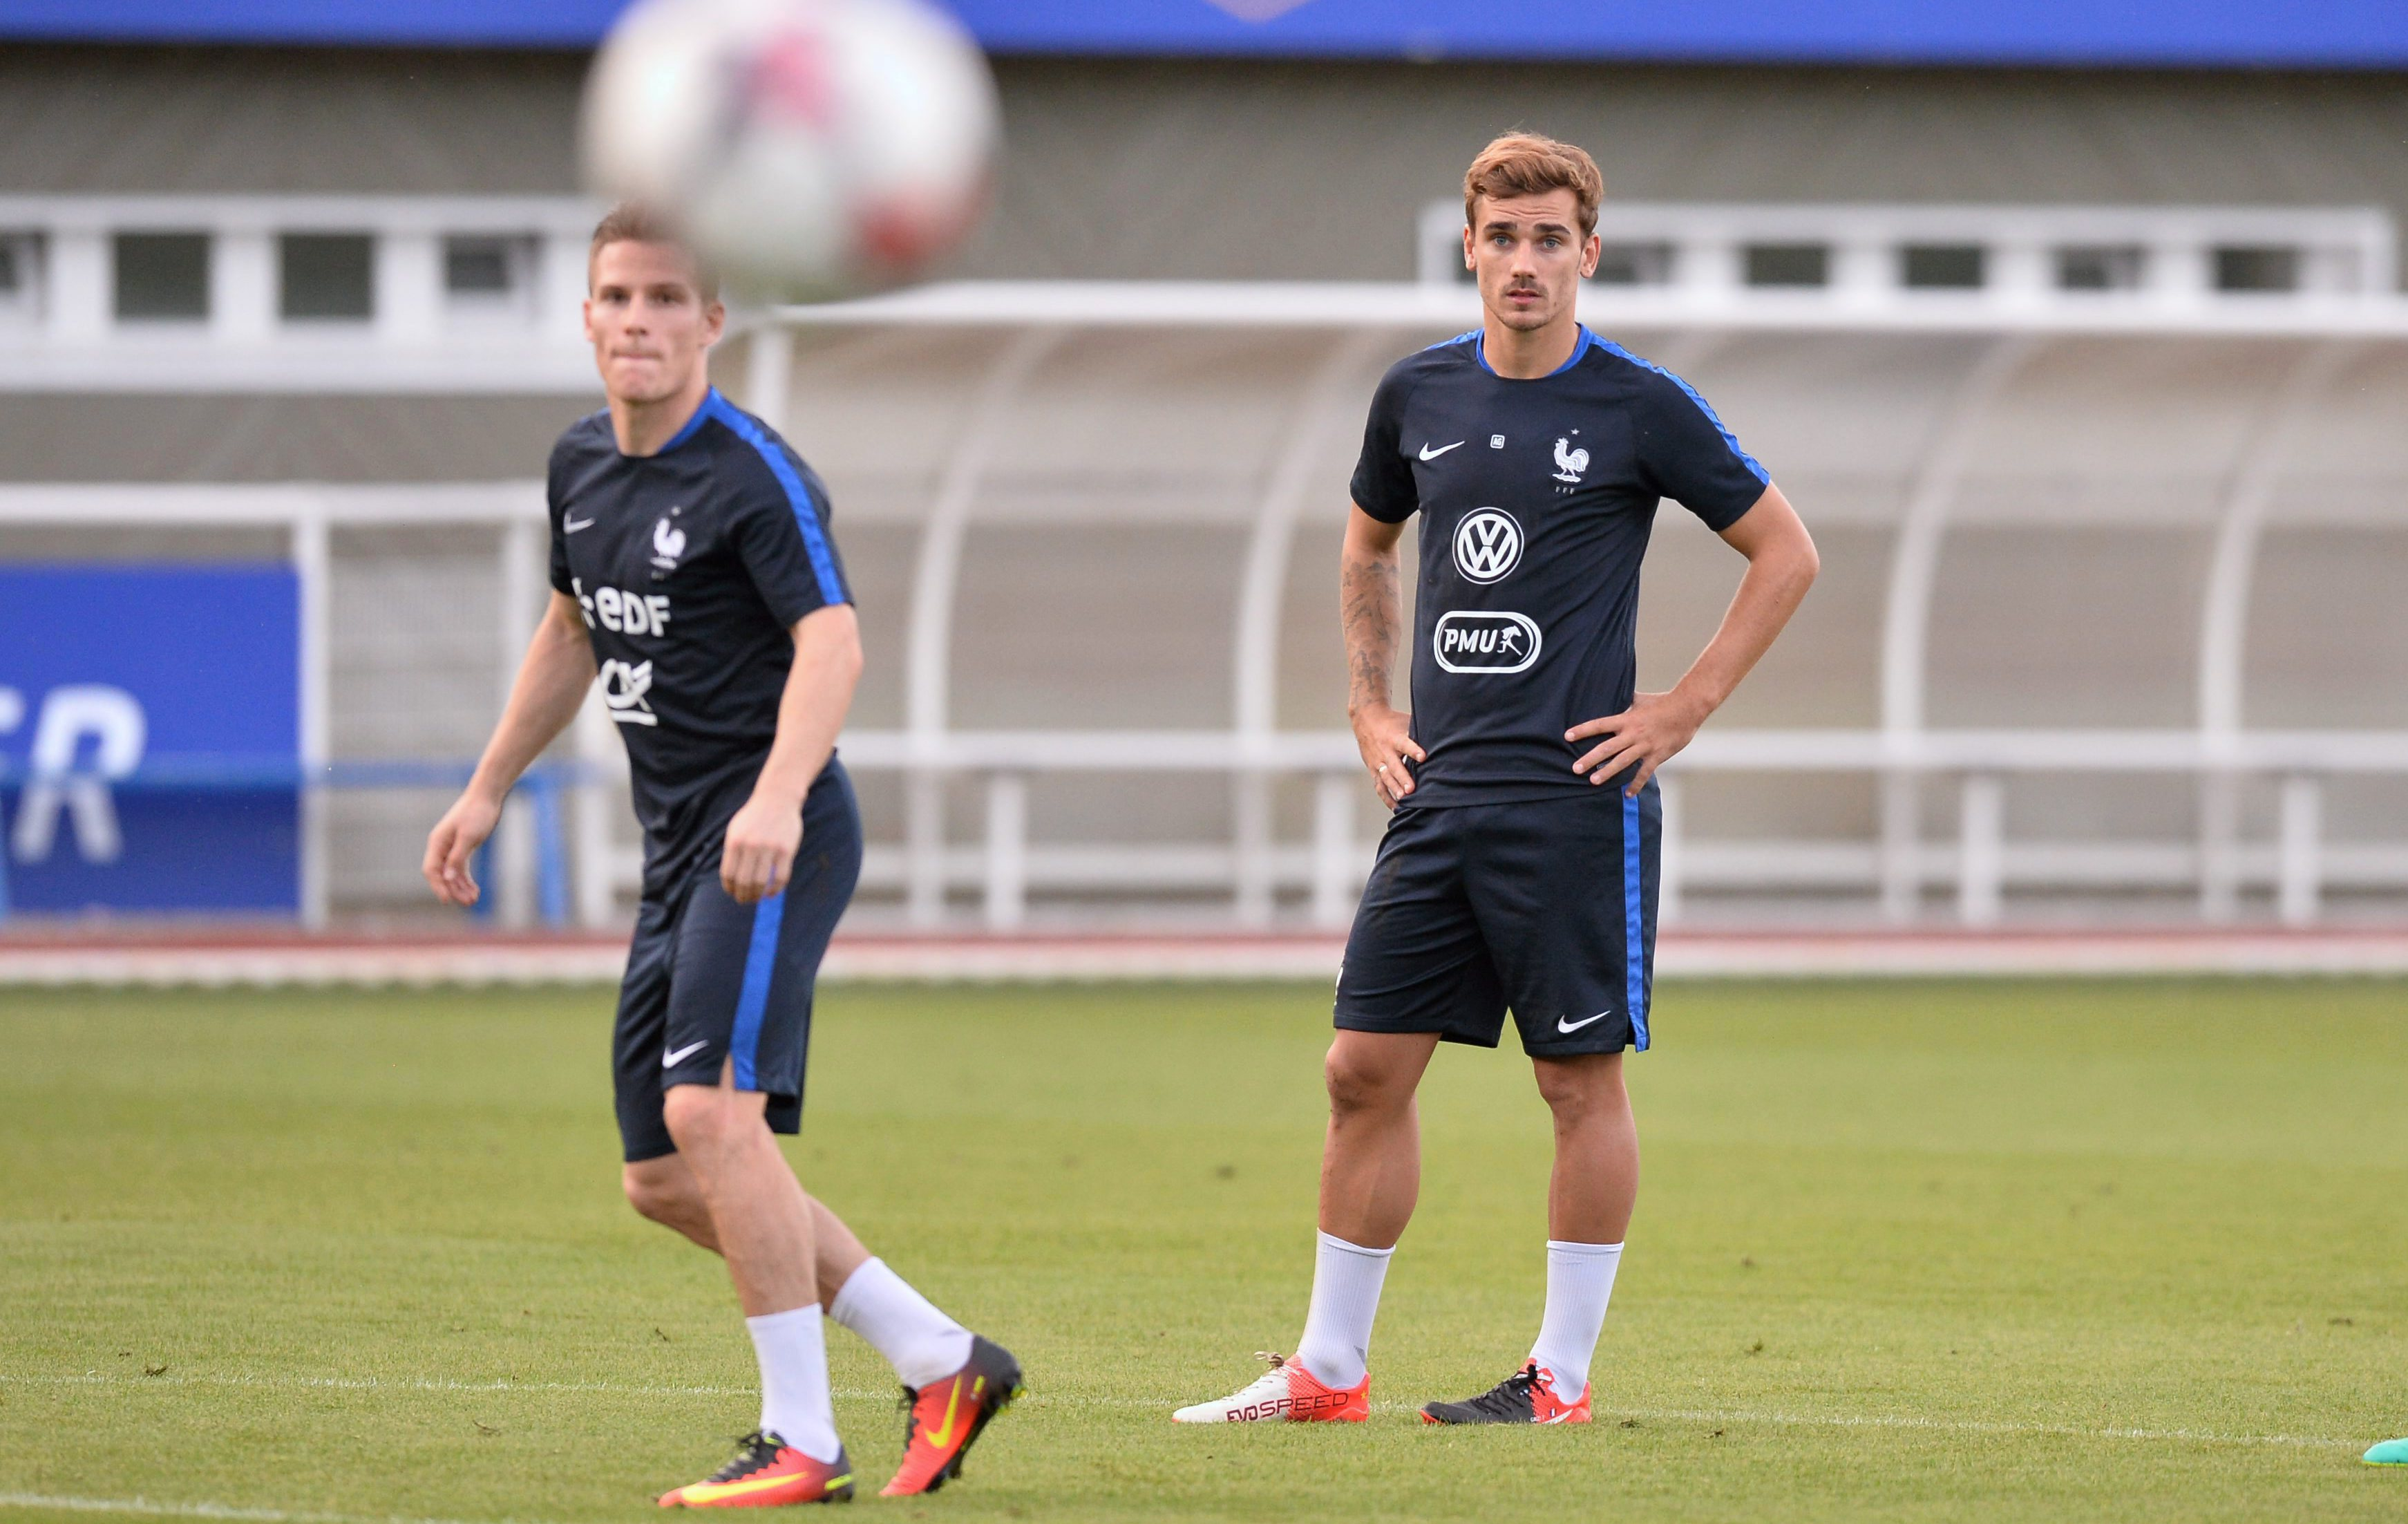 Football - Equipe de France - Griezmann-Gameiro, un duo à la pointe